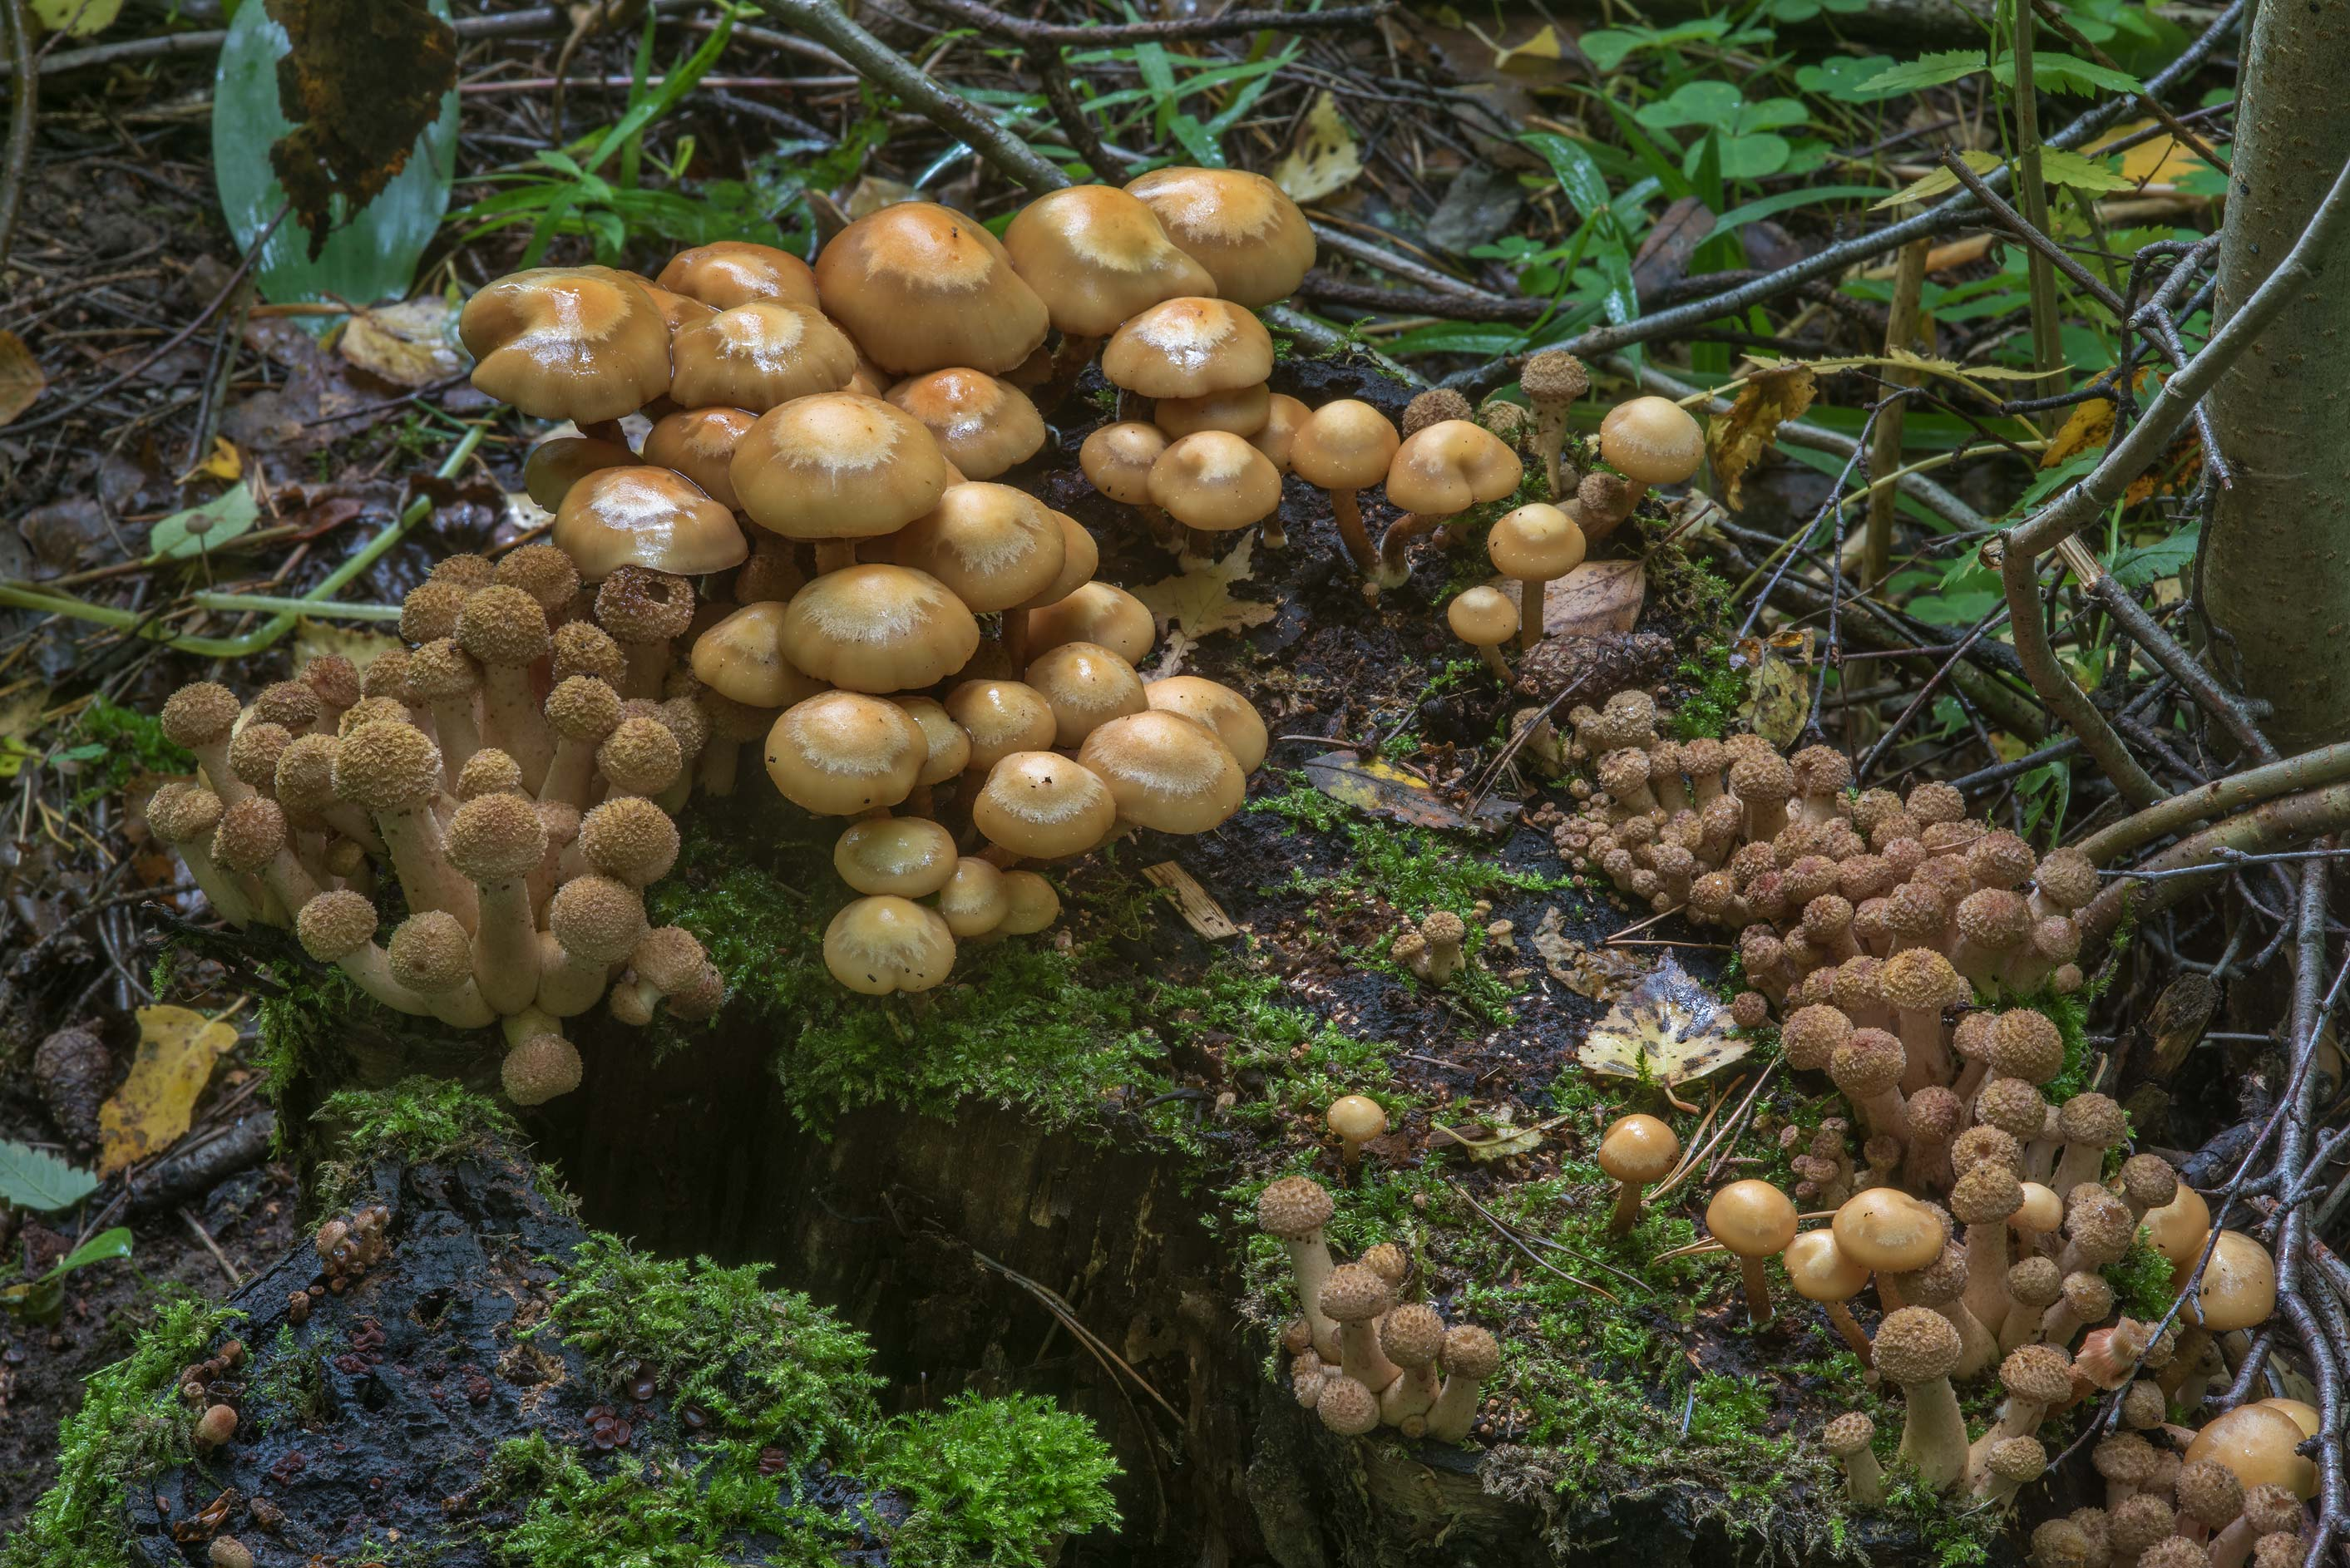 Immature northern honey mushrooms (Armillaria...a suburb of St.Petersburg, Russia